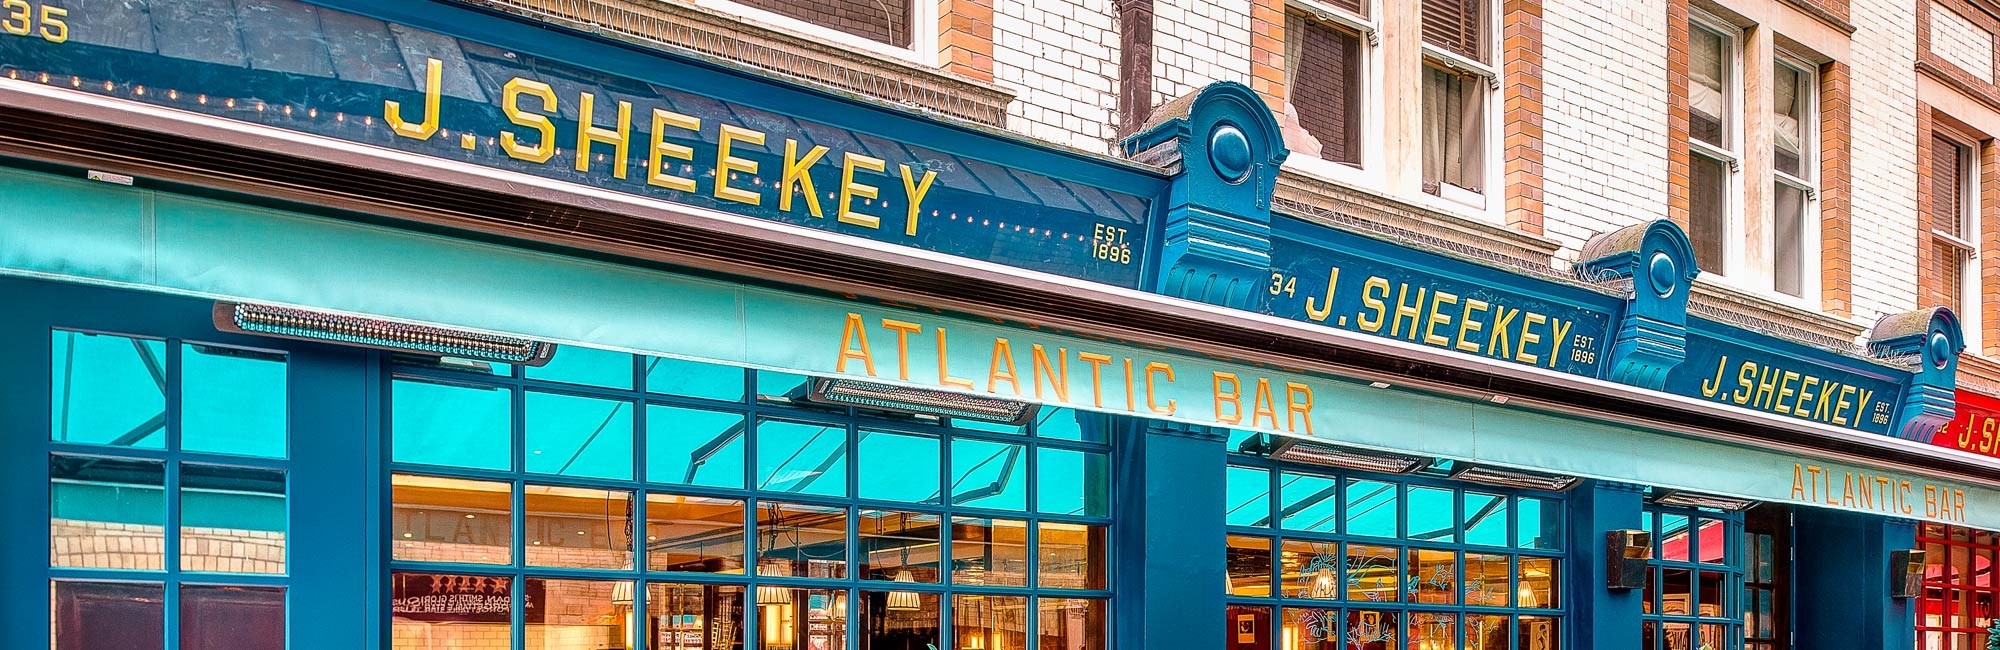 J Sheekey Atlantic Bar, Seafood Restaurant near Covent Garden